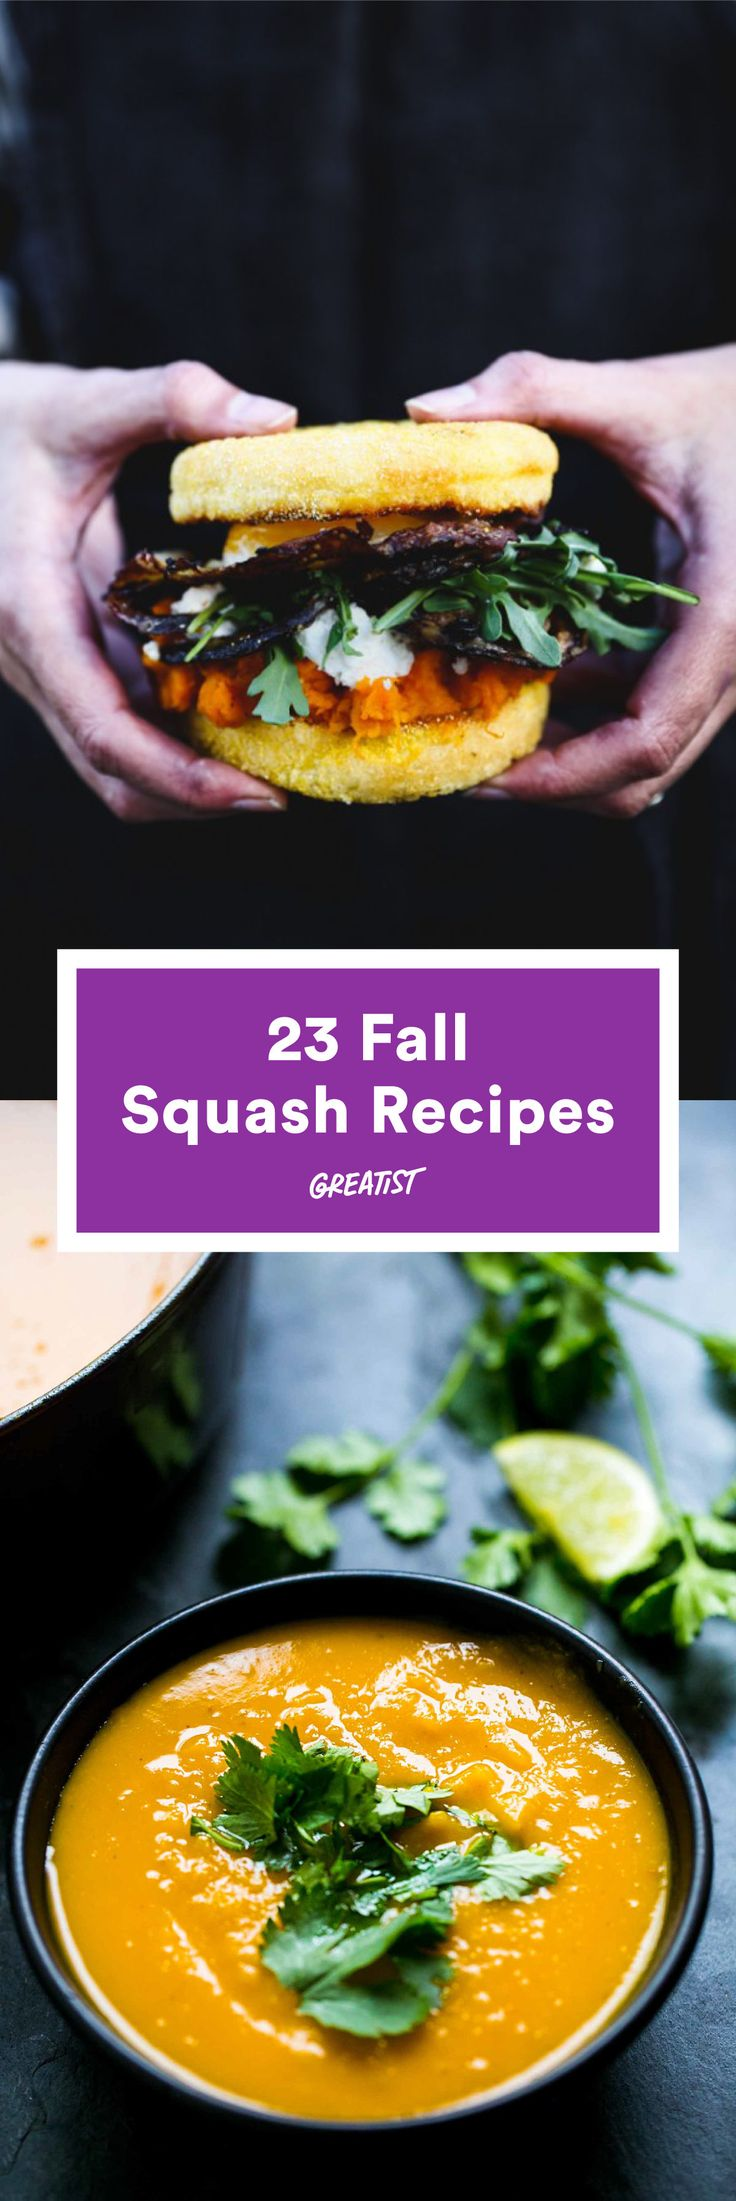 Meet your new favorite veg. #greatist http://greatist.com/eat/kabocha-squash-recipes